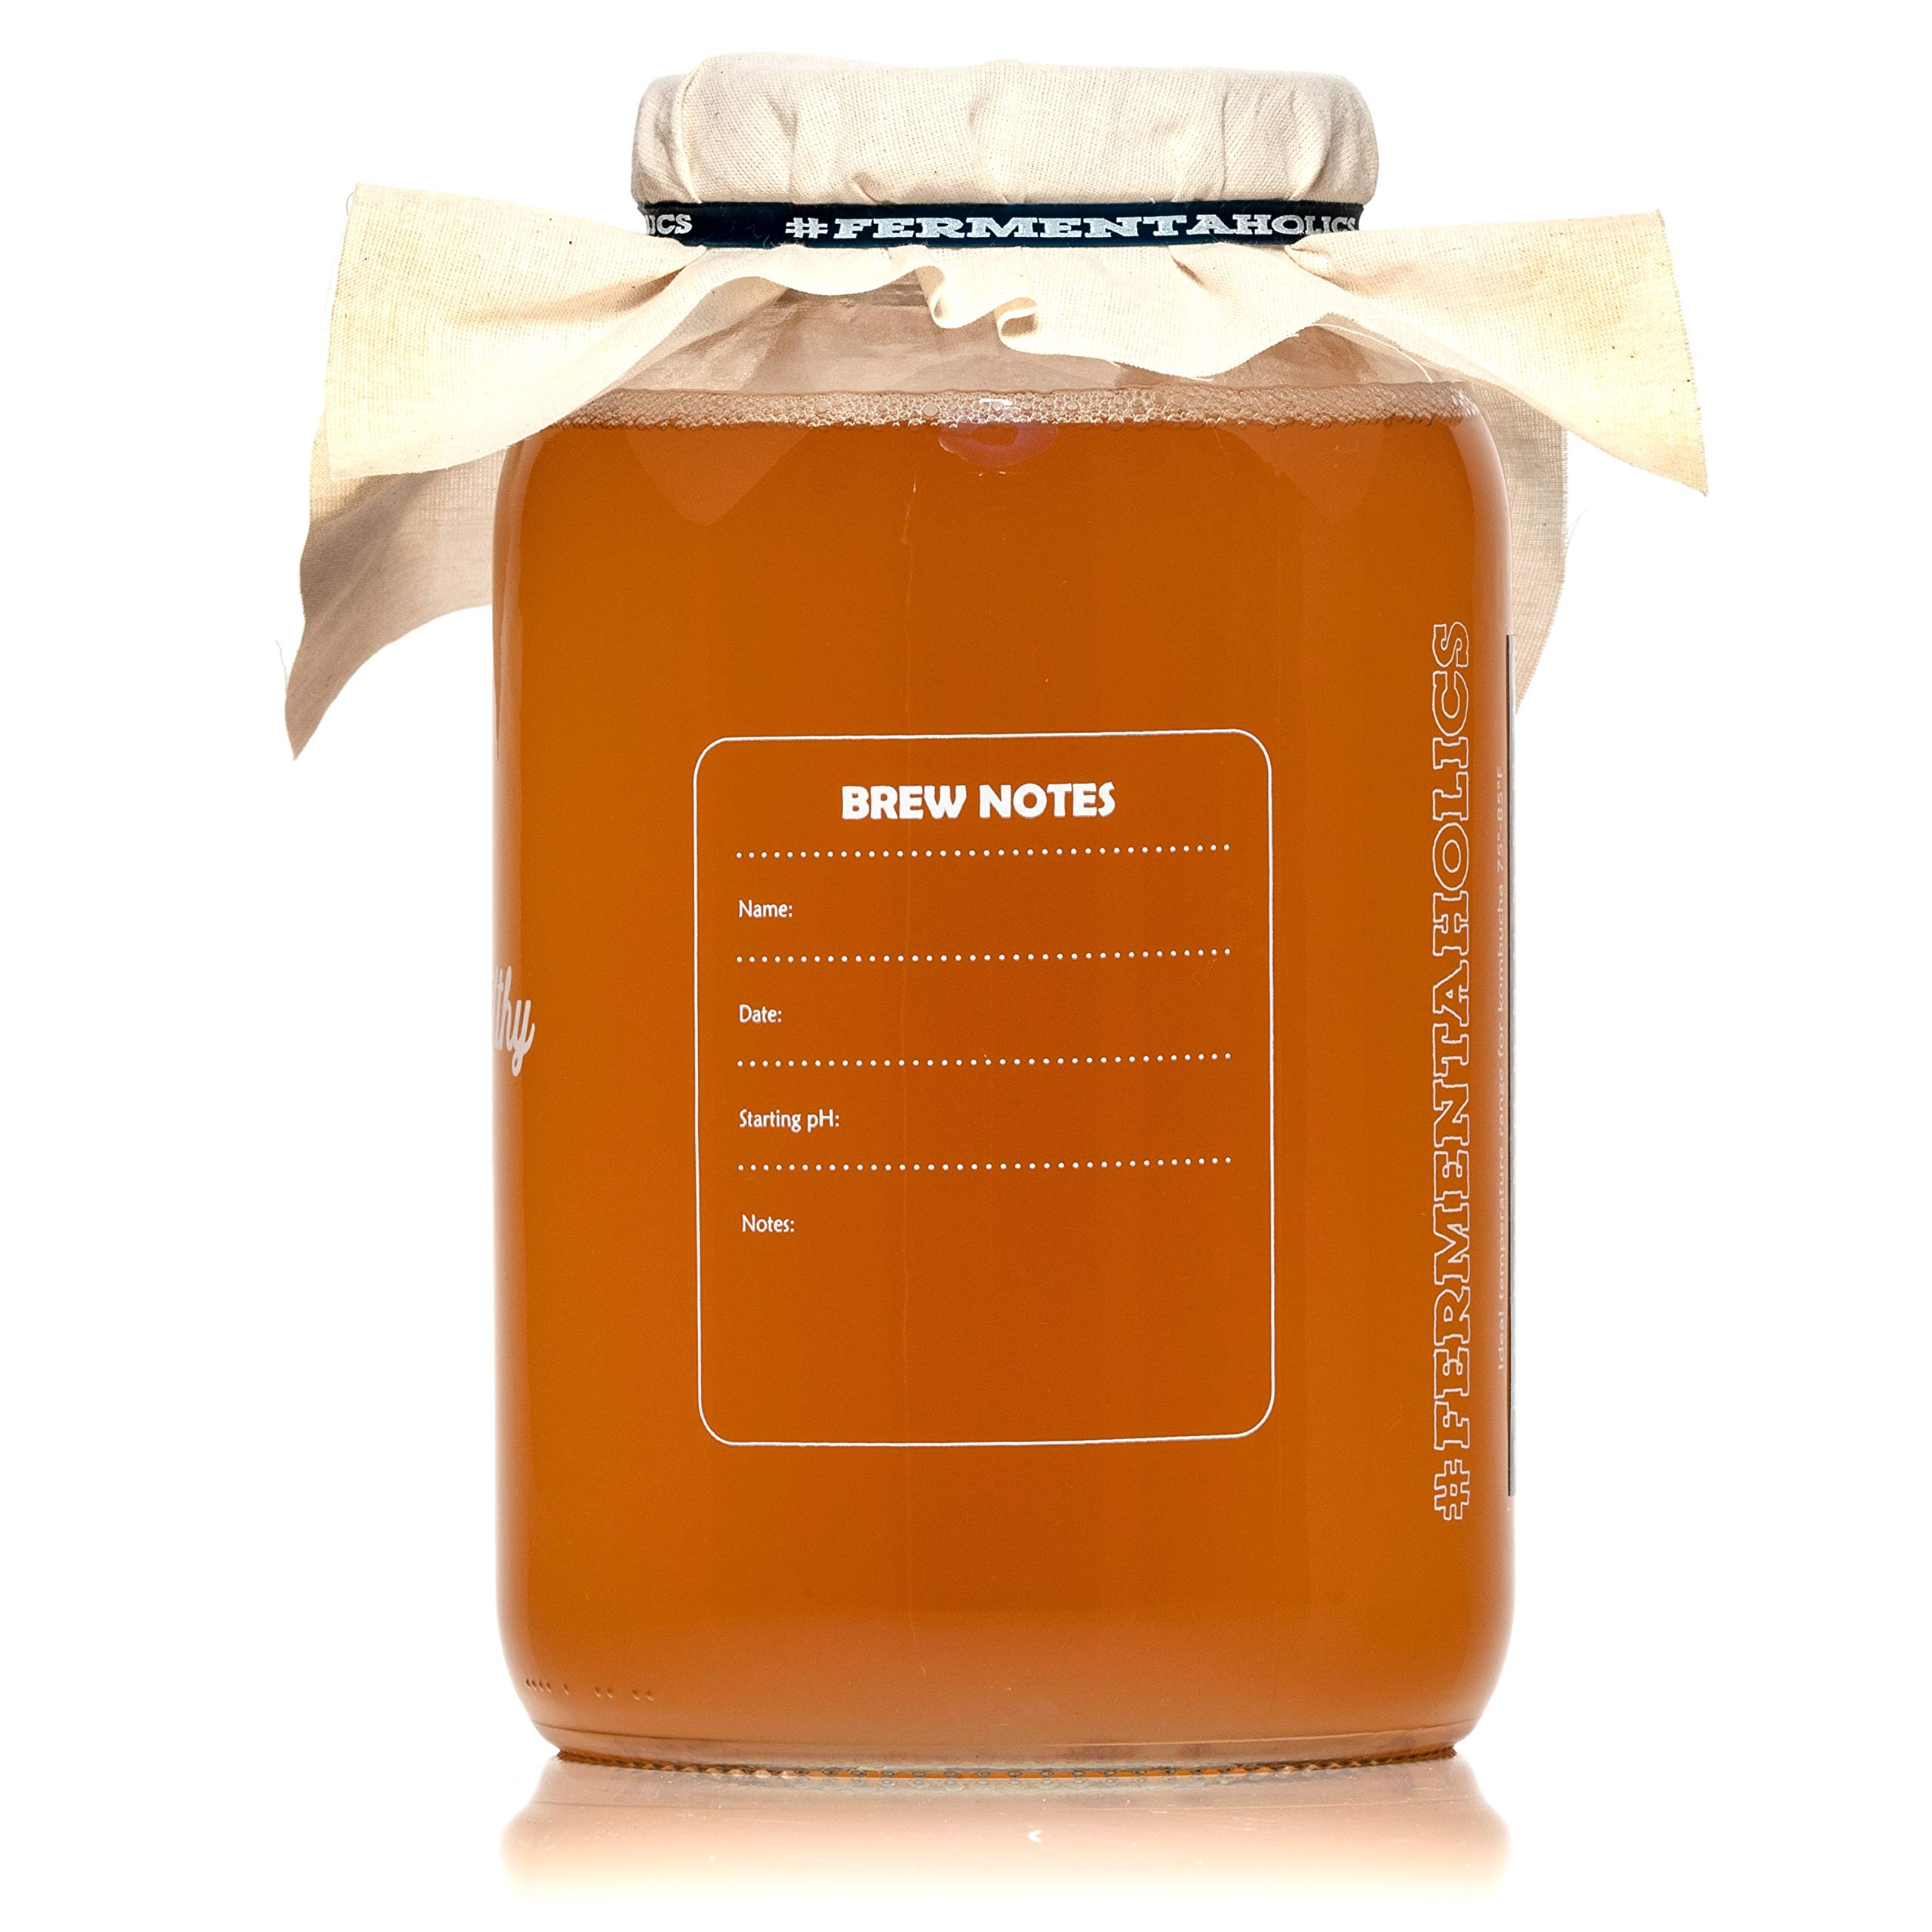 Fermentaholics Kombucha SCOBY (starter culture) + 1-Gallon Glass Fermenting Jar with Breathable Cover + Rubber Band + Adhesive Thermometer - Brew kombucha at Home - Detailed Instructions Included by Fermentaholics (Image #6)